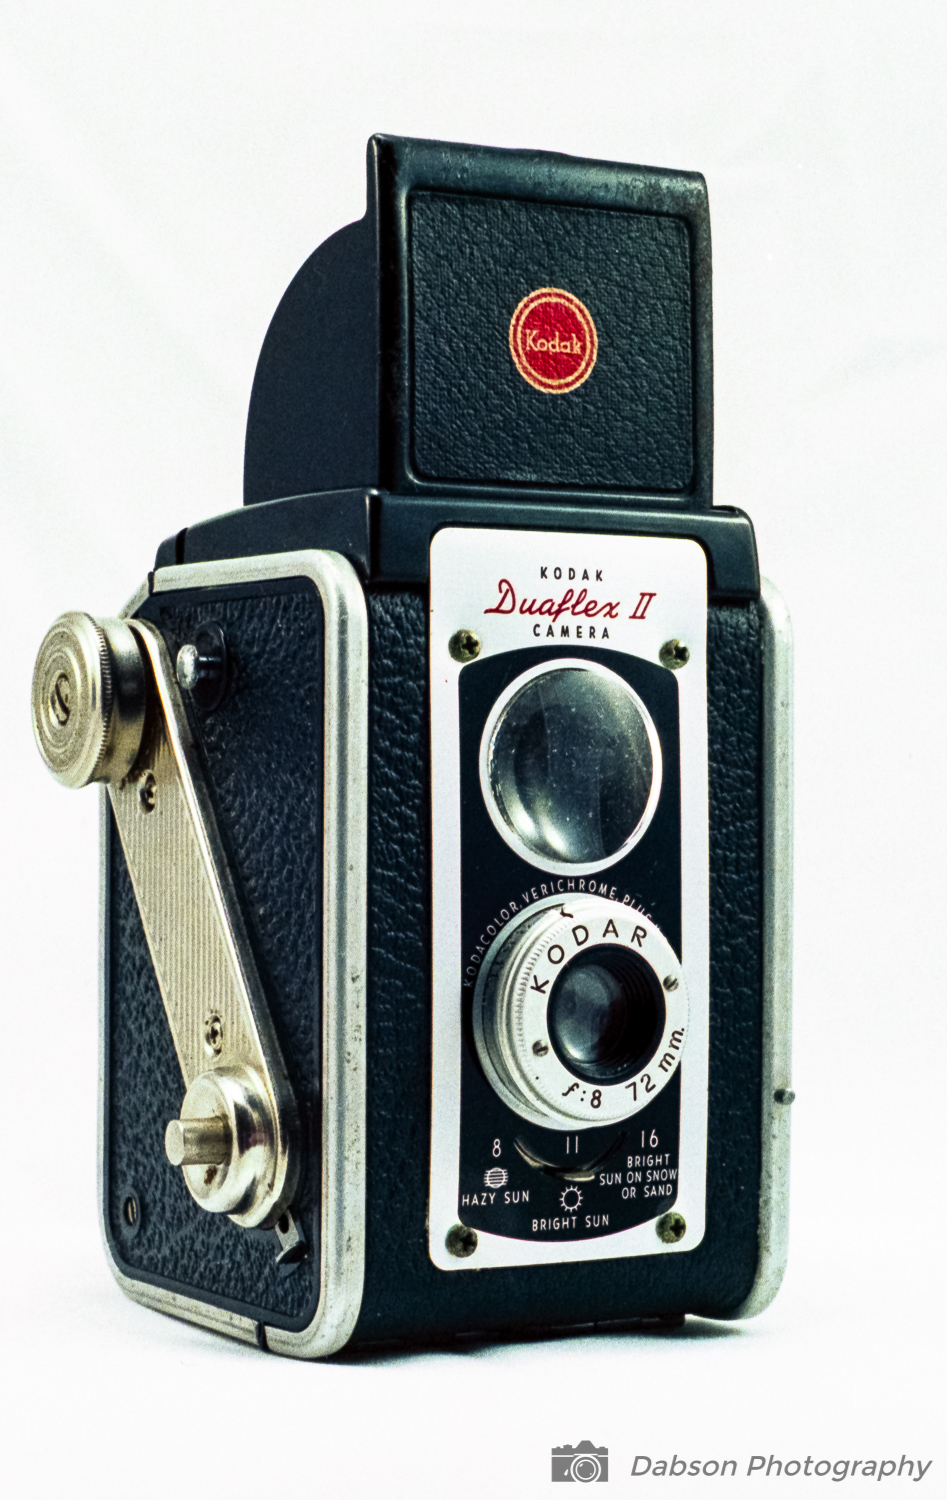 Kodak Duaflex II - Kodak's twin lens reflex camera for the masses.